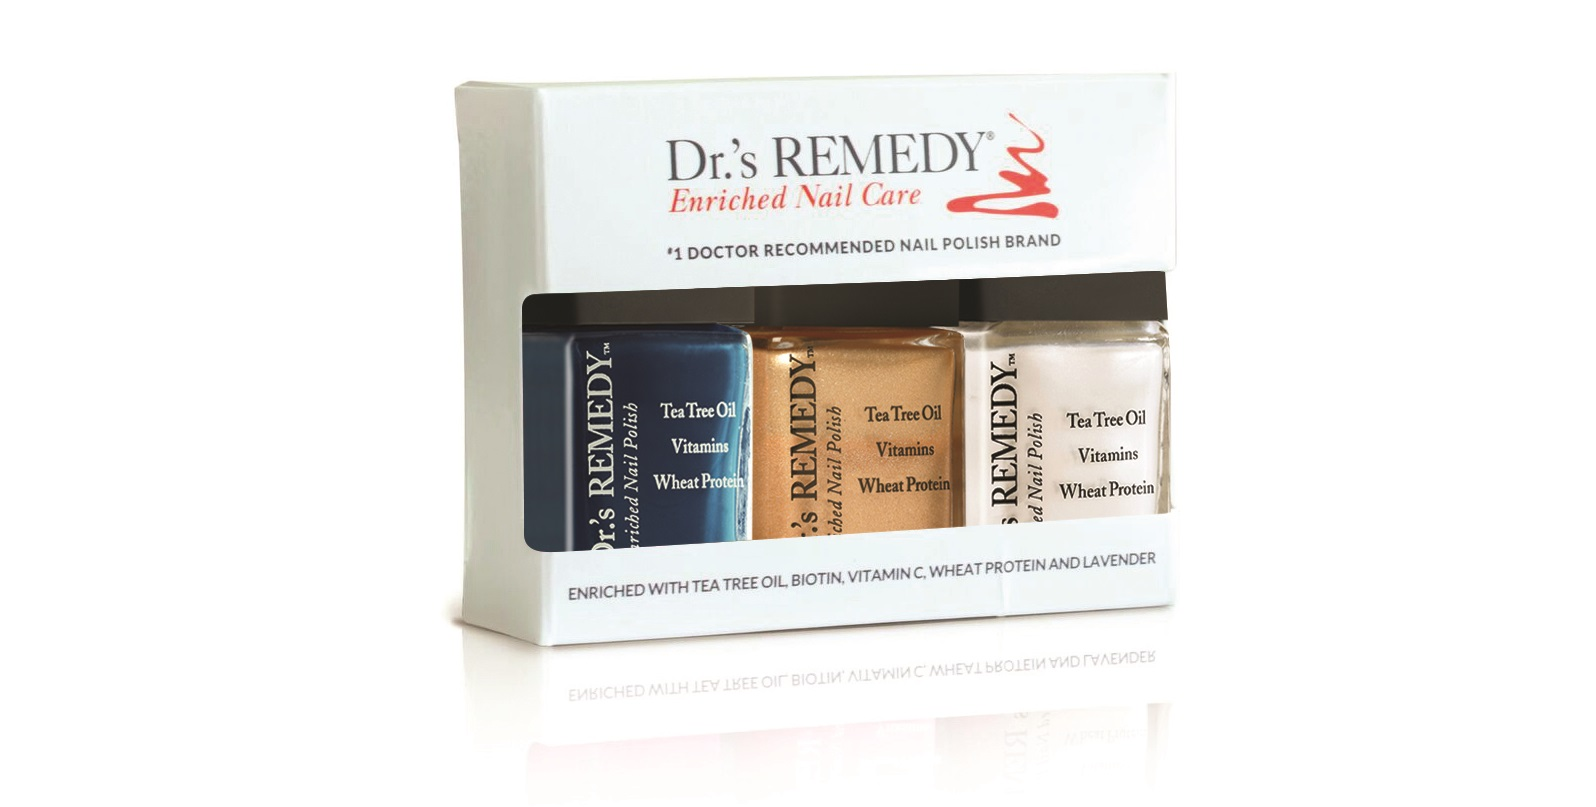 Dr.'s REMEDY Winter Elements Gift Set